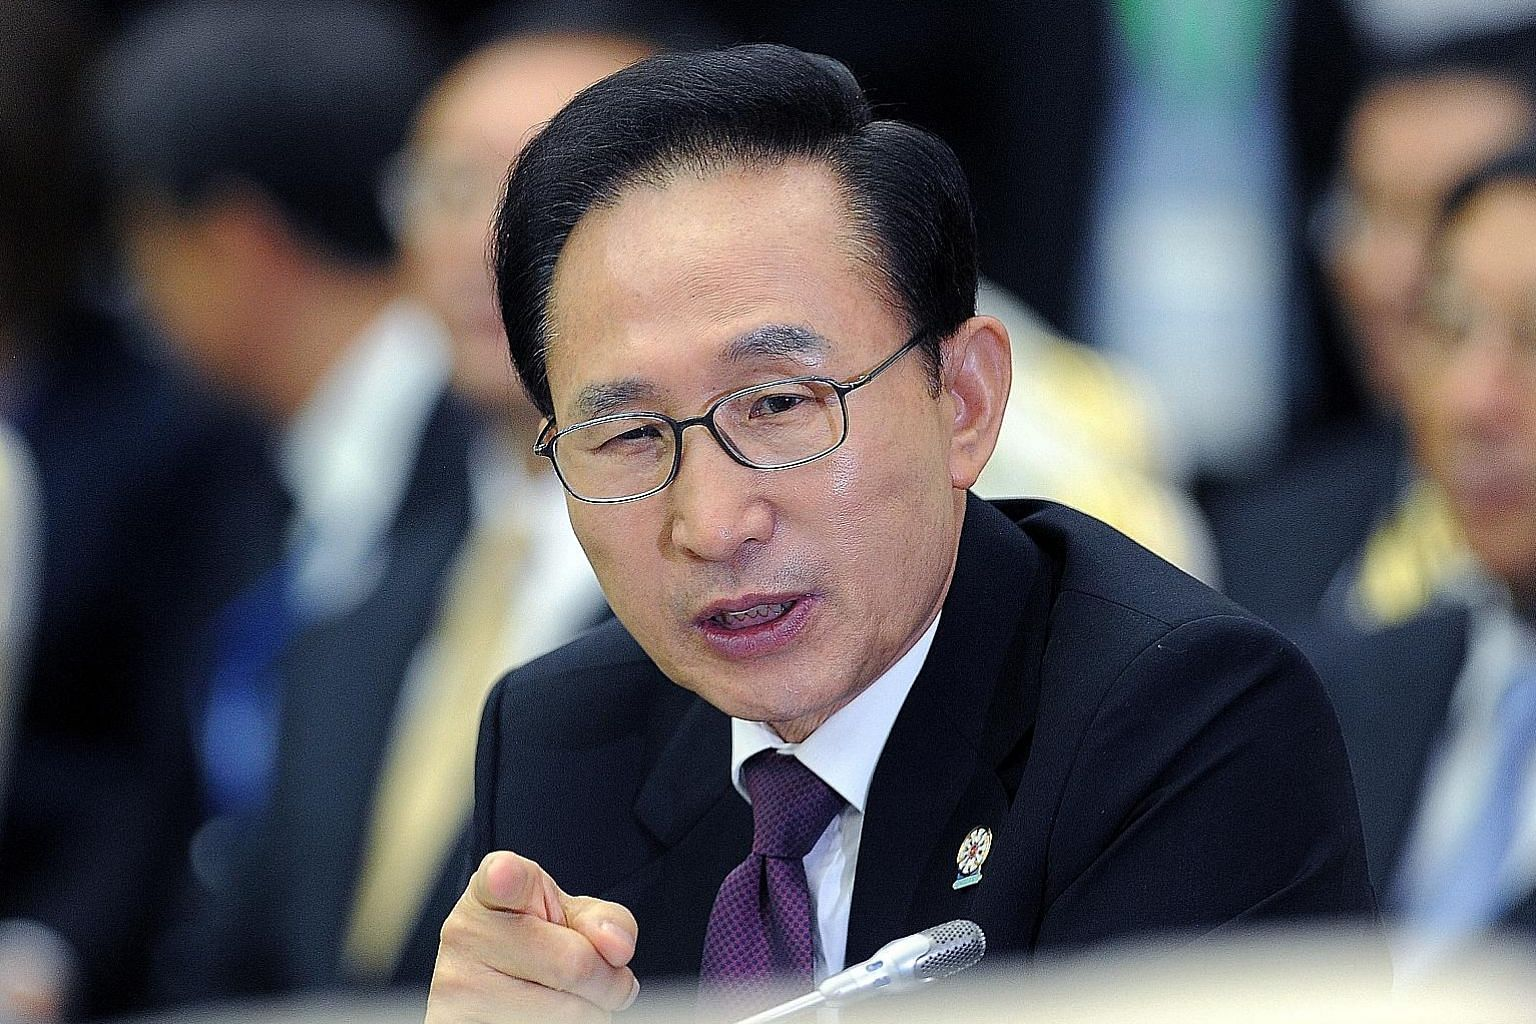 Lee Myung Bak has been charged with bribery, power abuse, embezzlement and tax evasion.